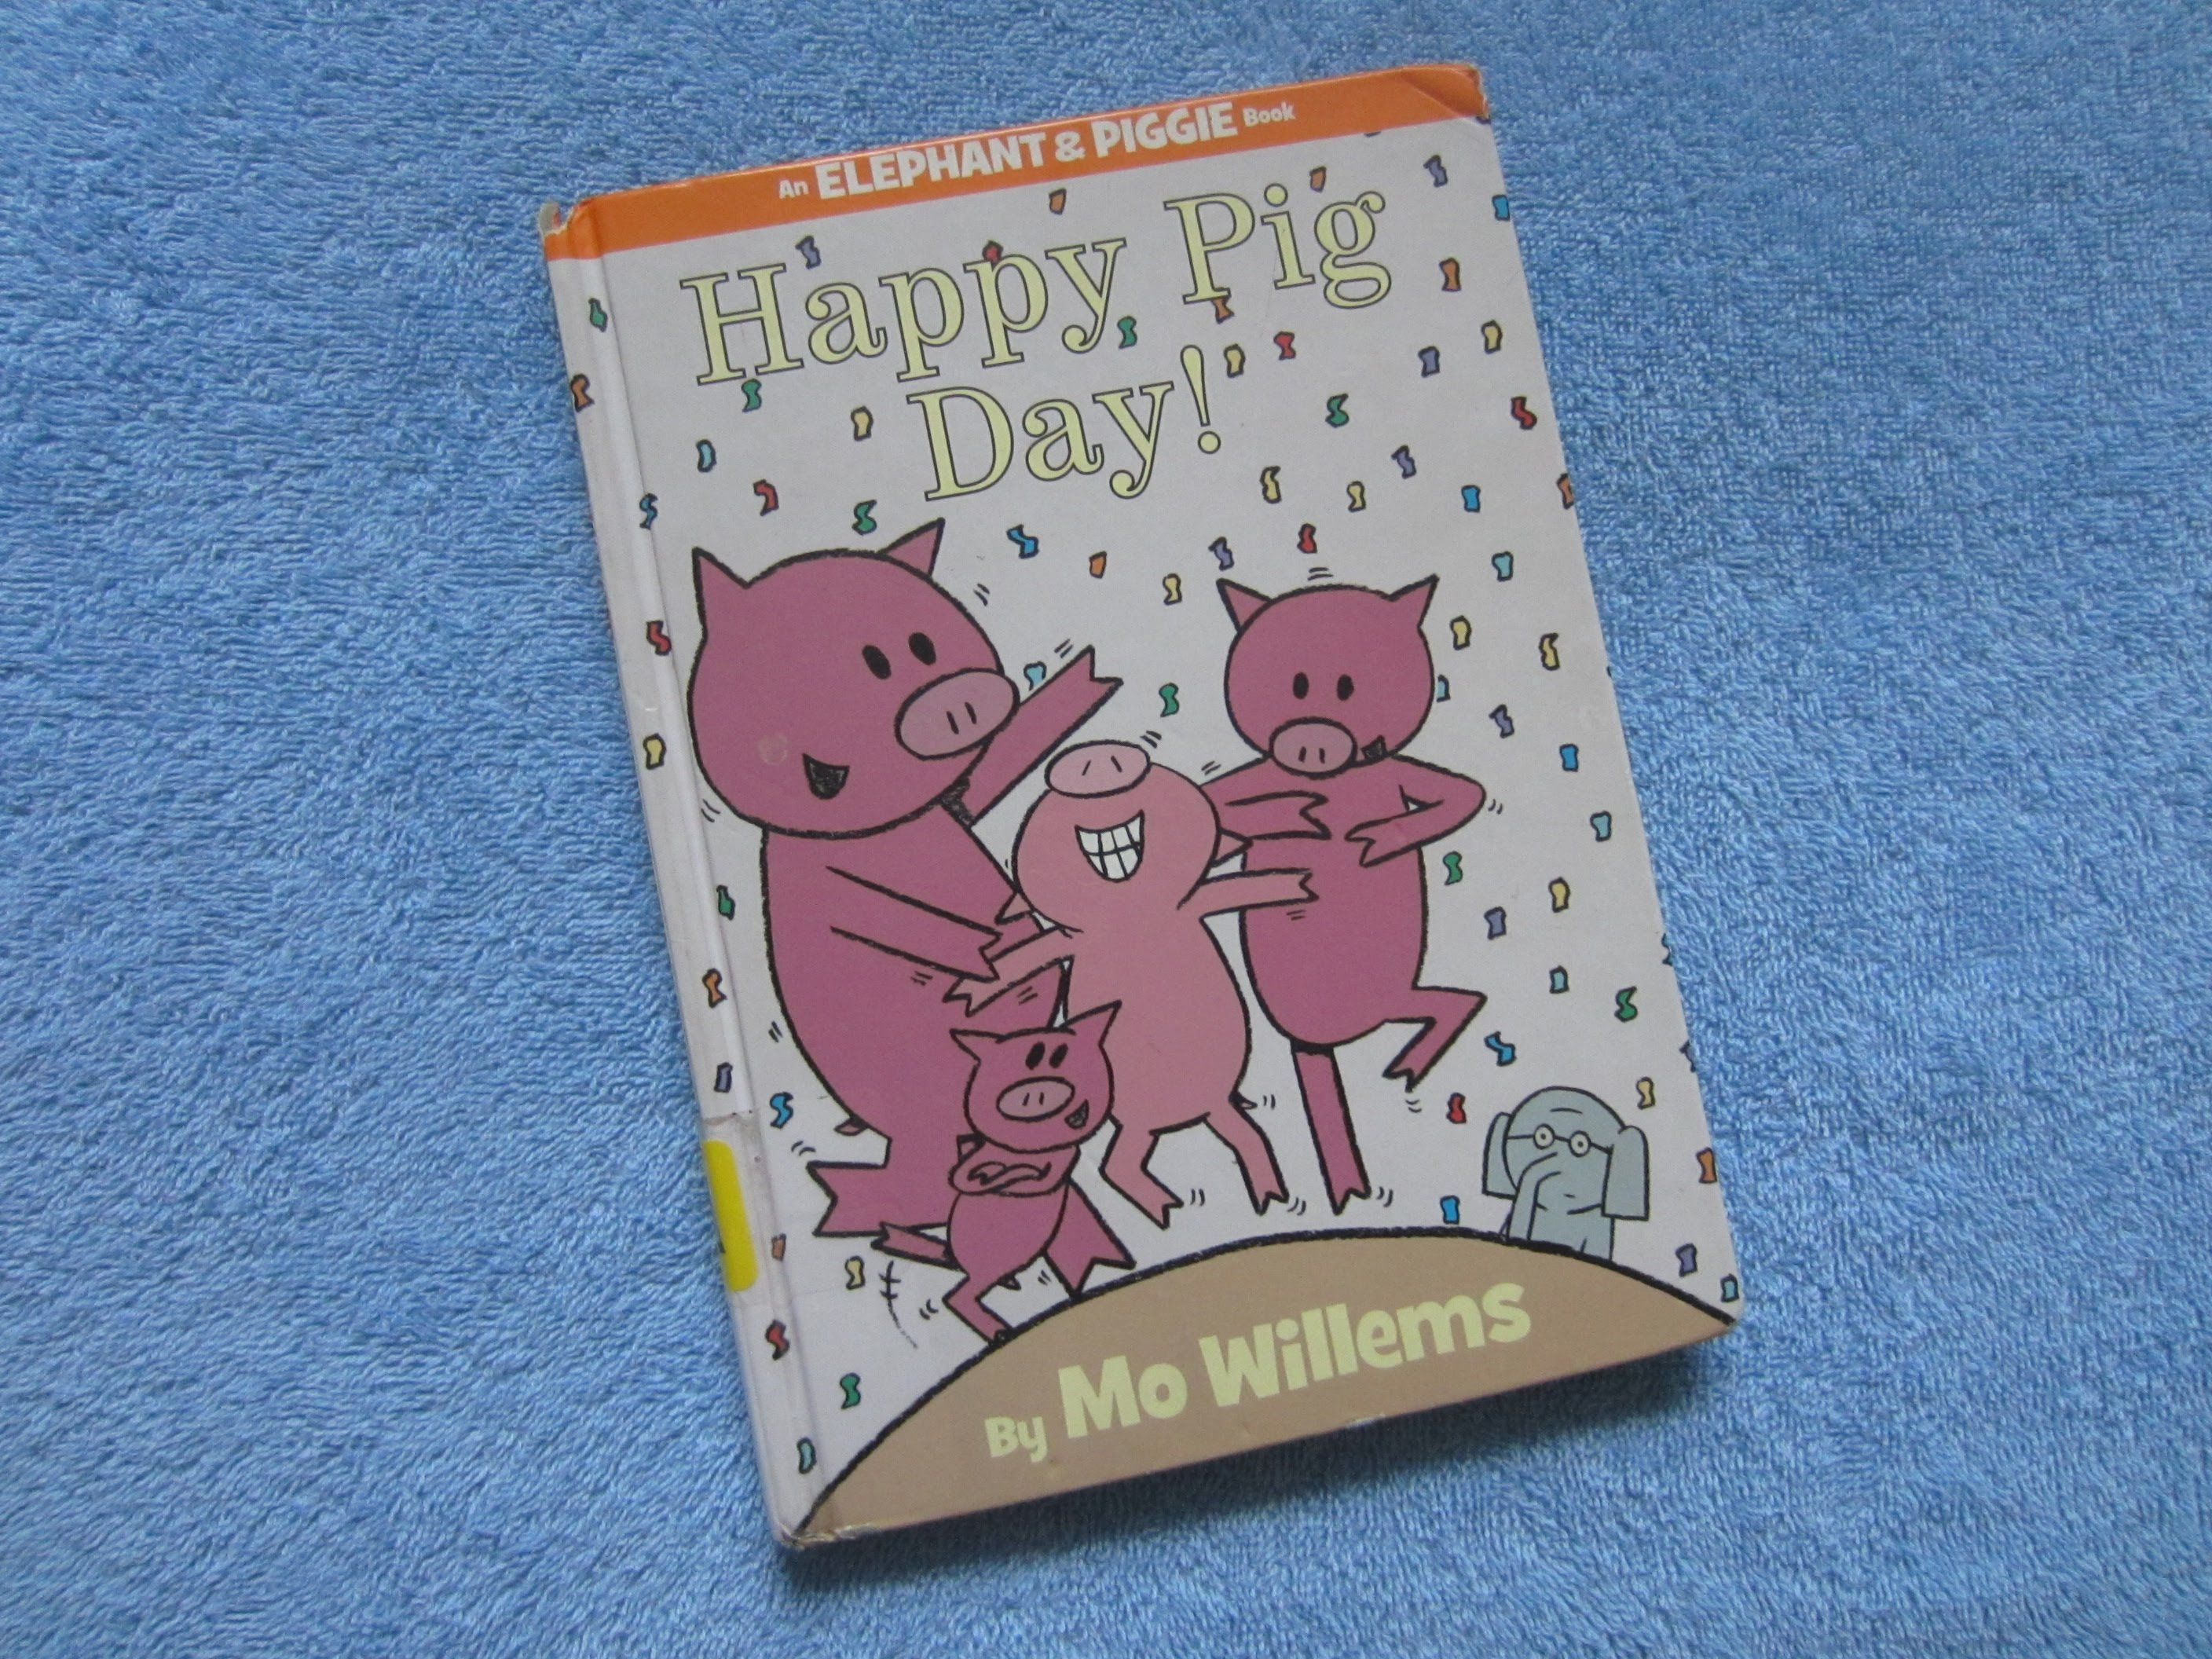 Happy pig day an elephant piggie childrens read along